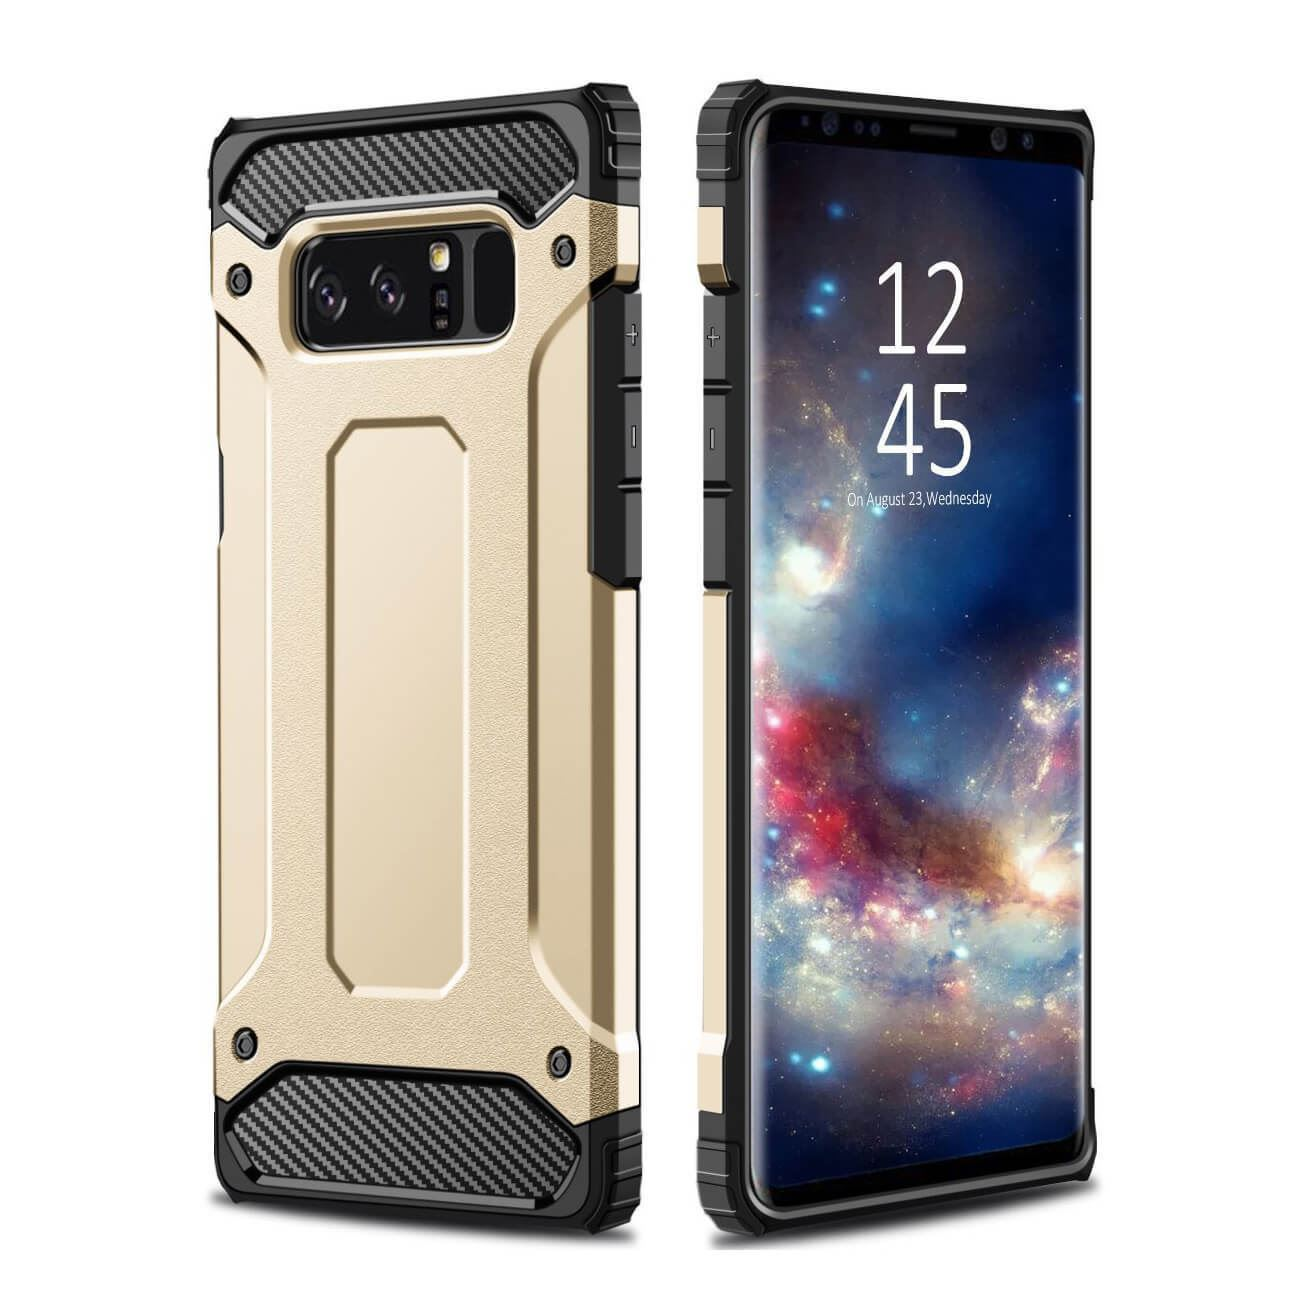 Hybrid-Armor-Case-For-Samsung-Galaxy-S7-S8-S9-Shockproof-Rugged-Bumper-Cover thumbnail 44